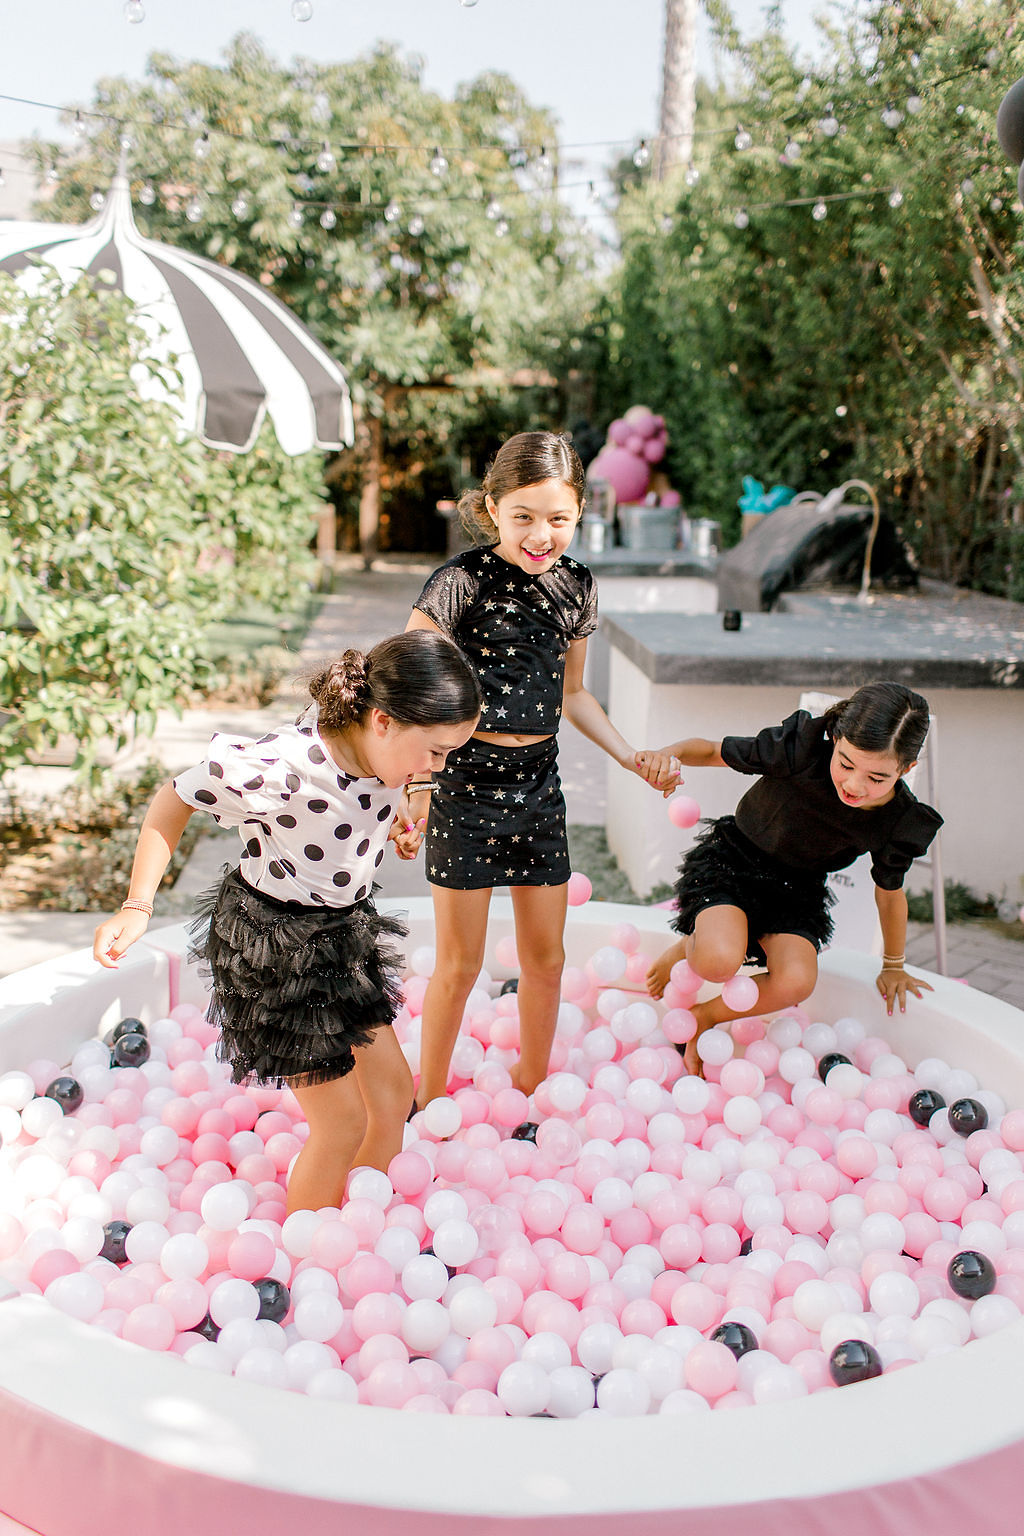 French Patisserie themed kids birthday party